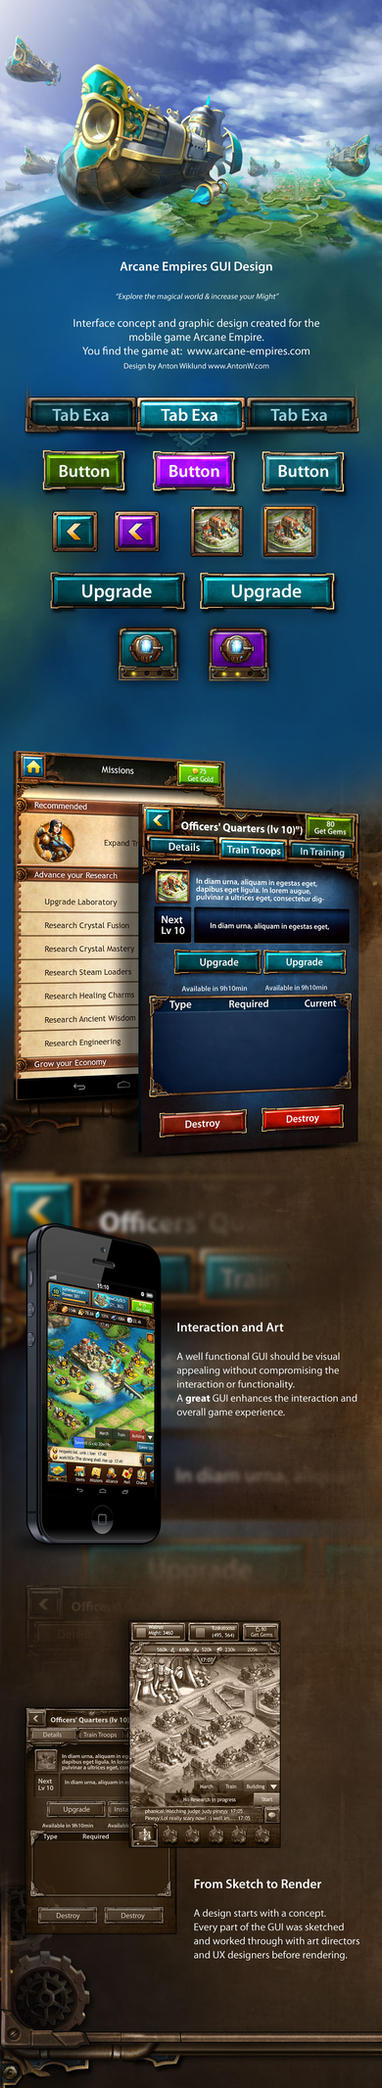 Arcane Empires Mobile Game GUI by karsten